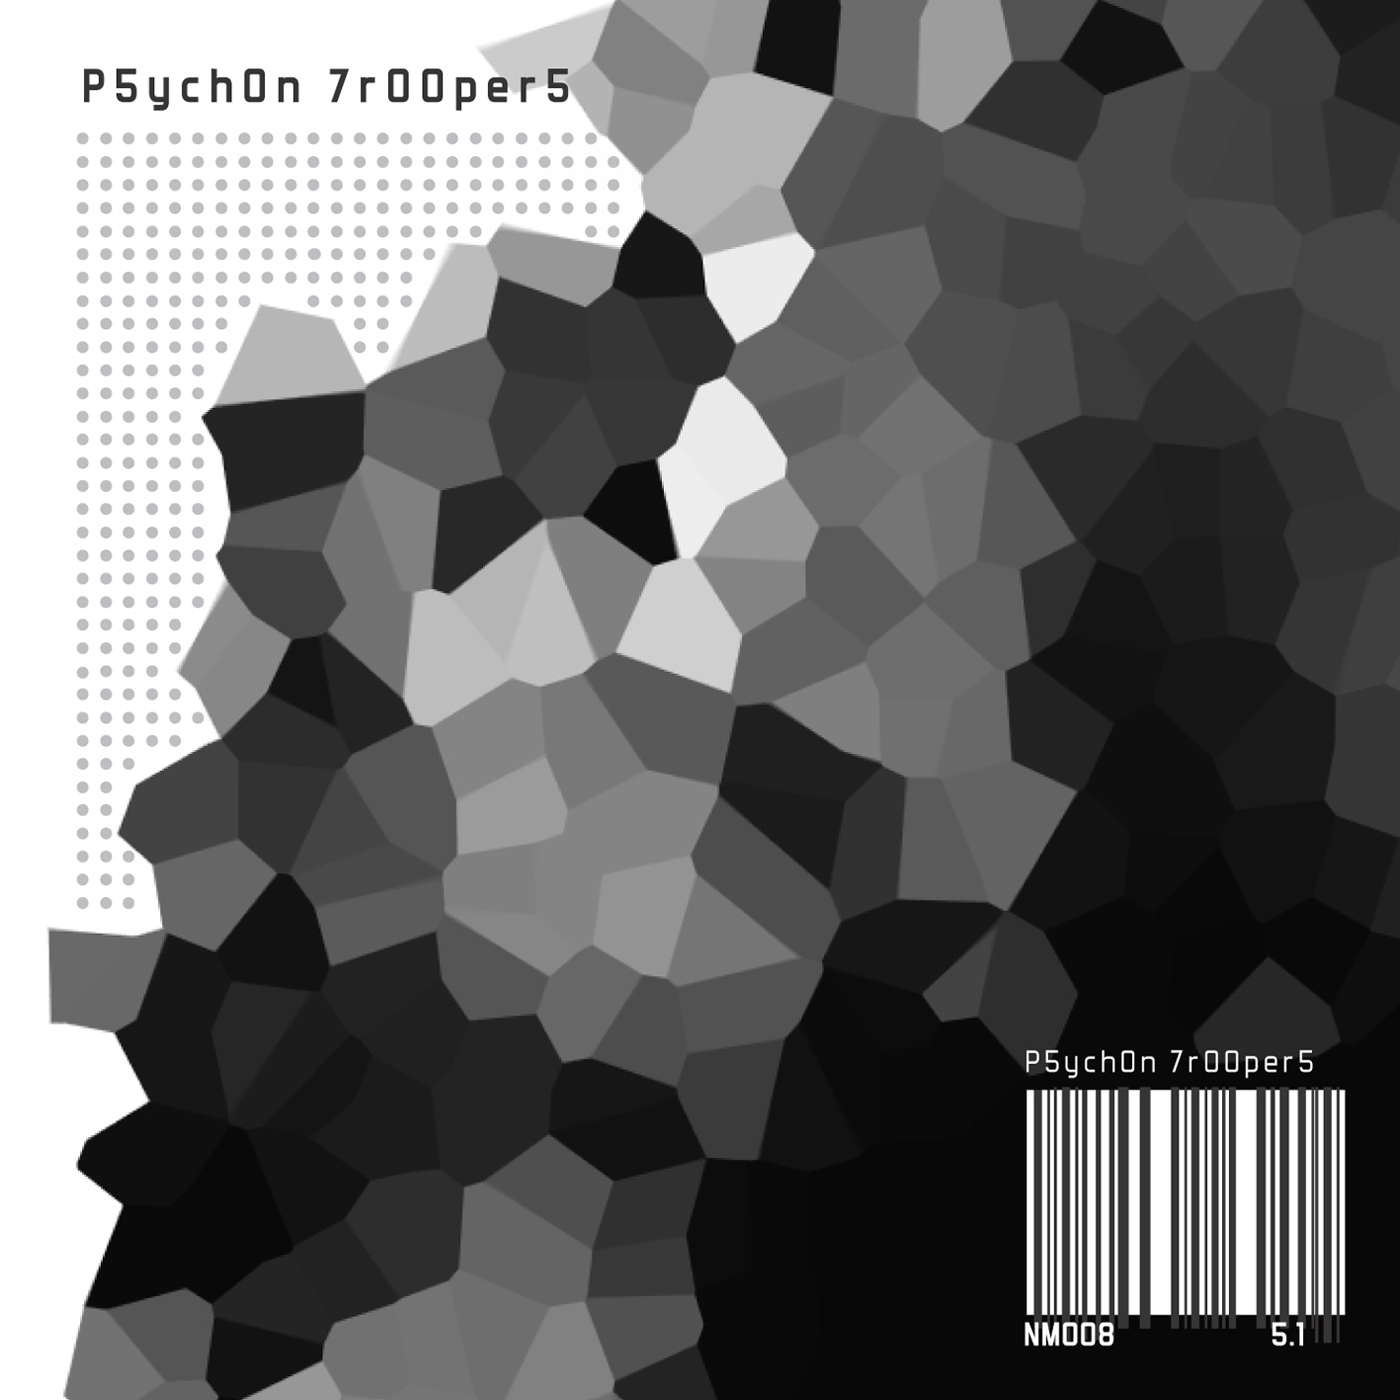 NM008: psychon troopers - 5.1